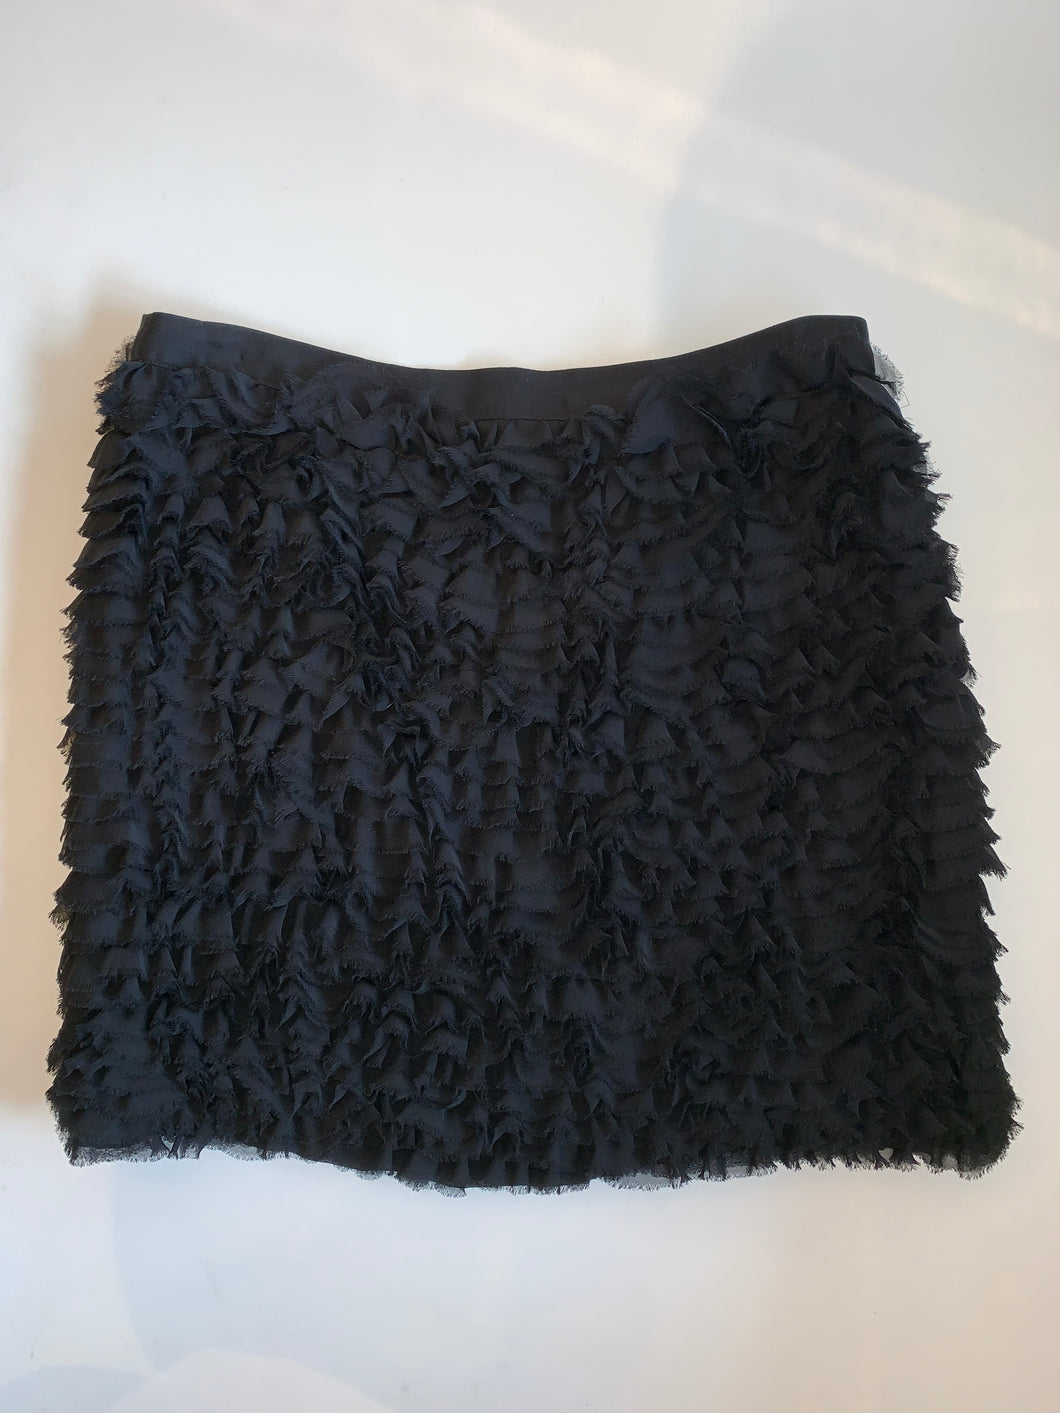 Michael Kors Ruffle Skirt - black